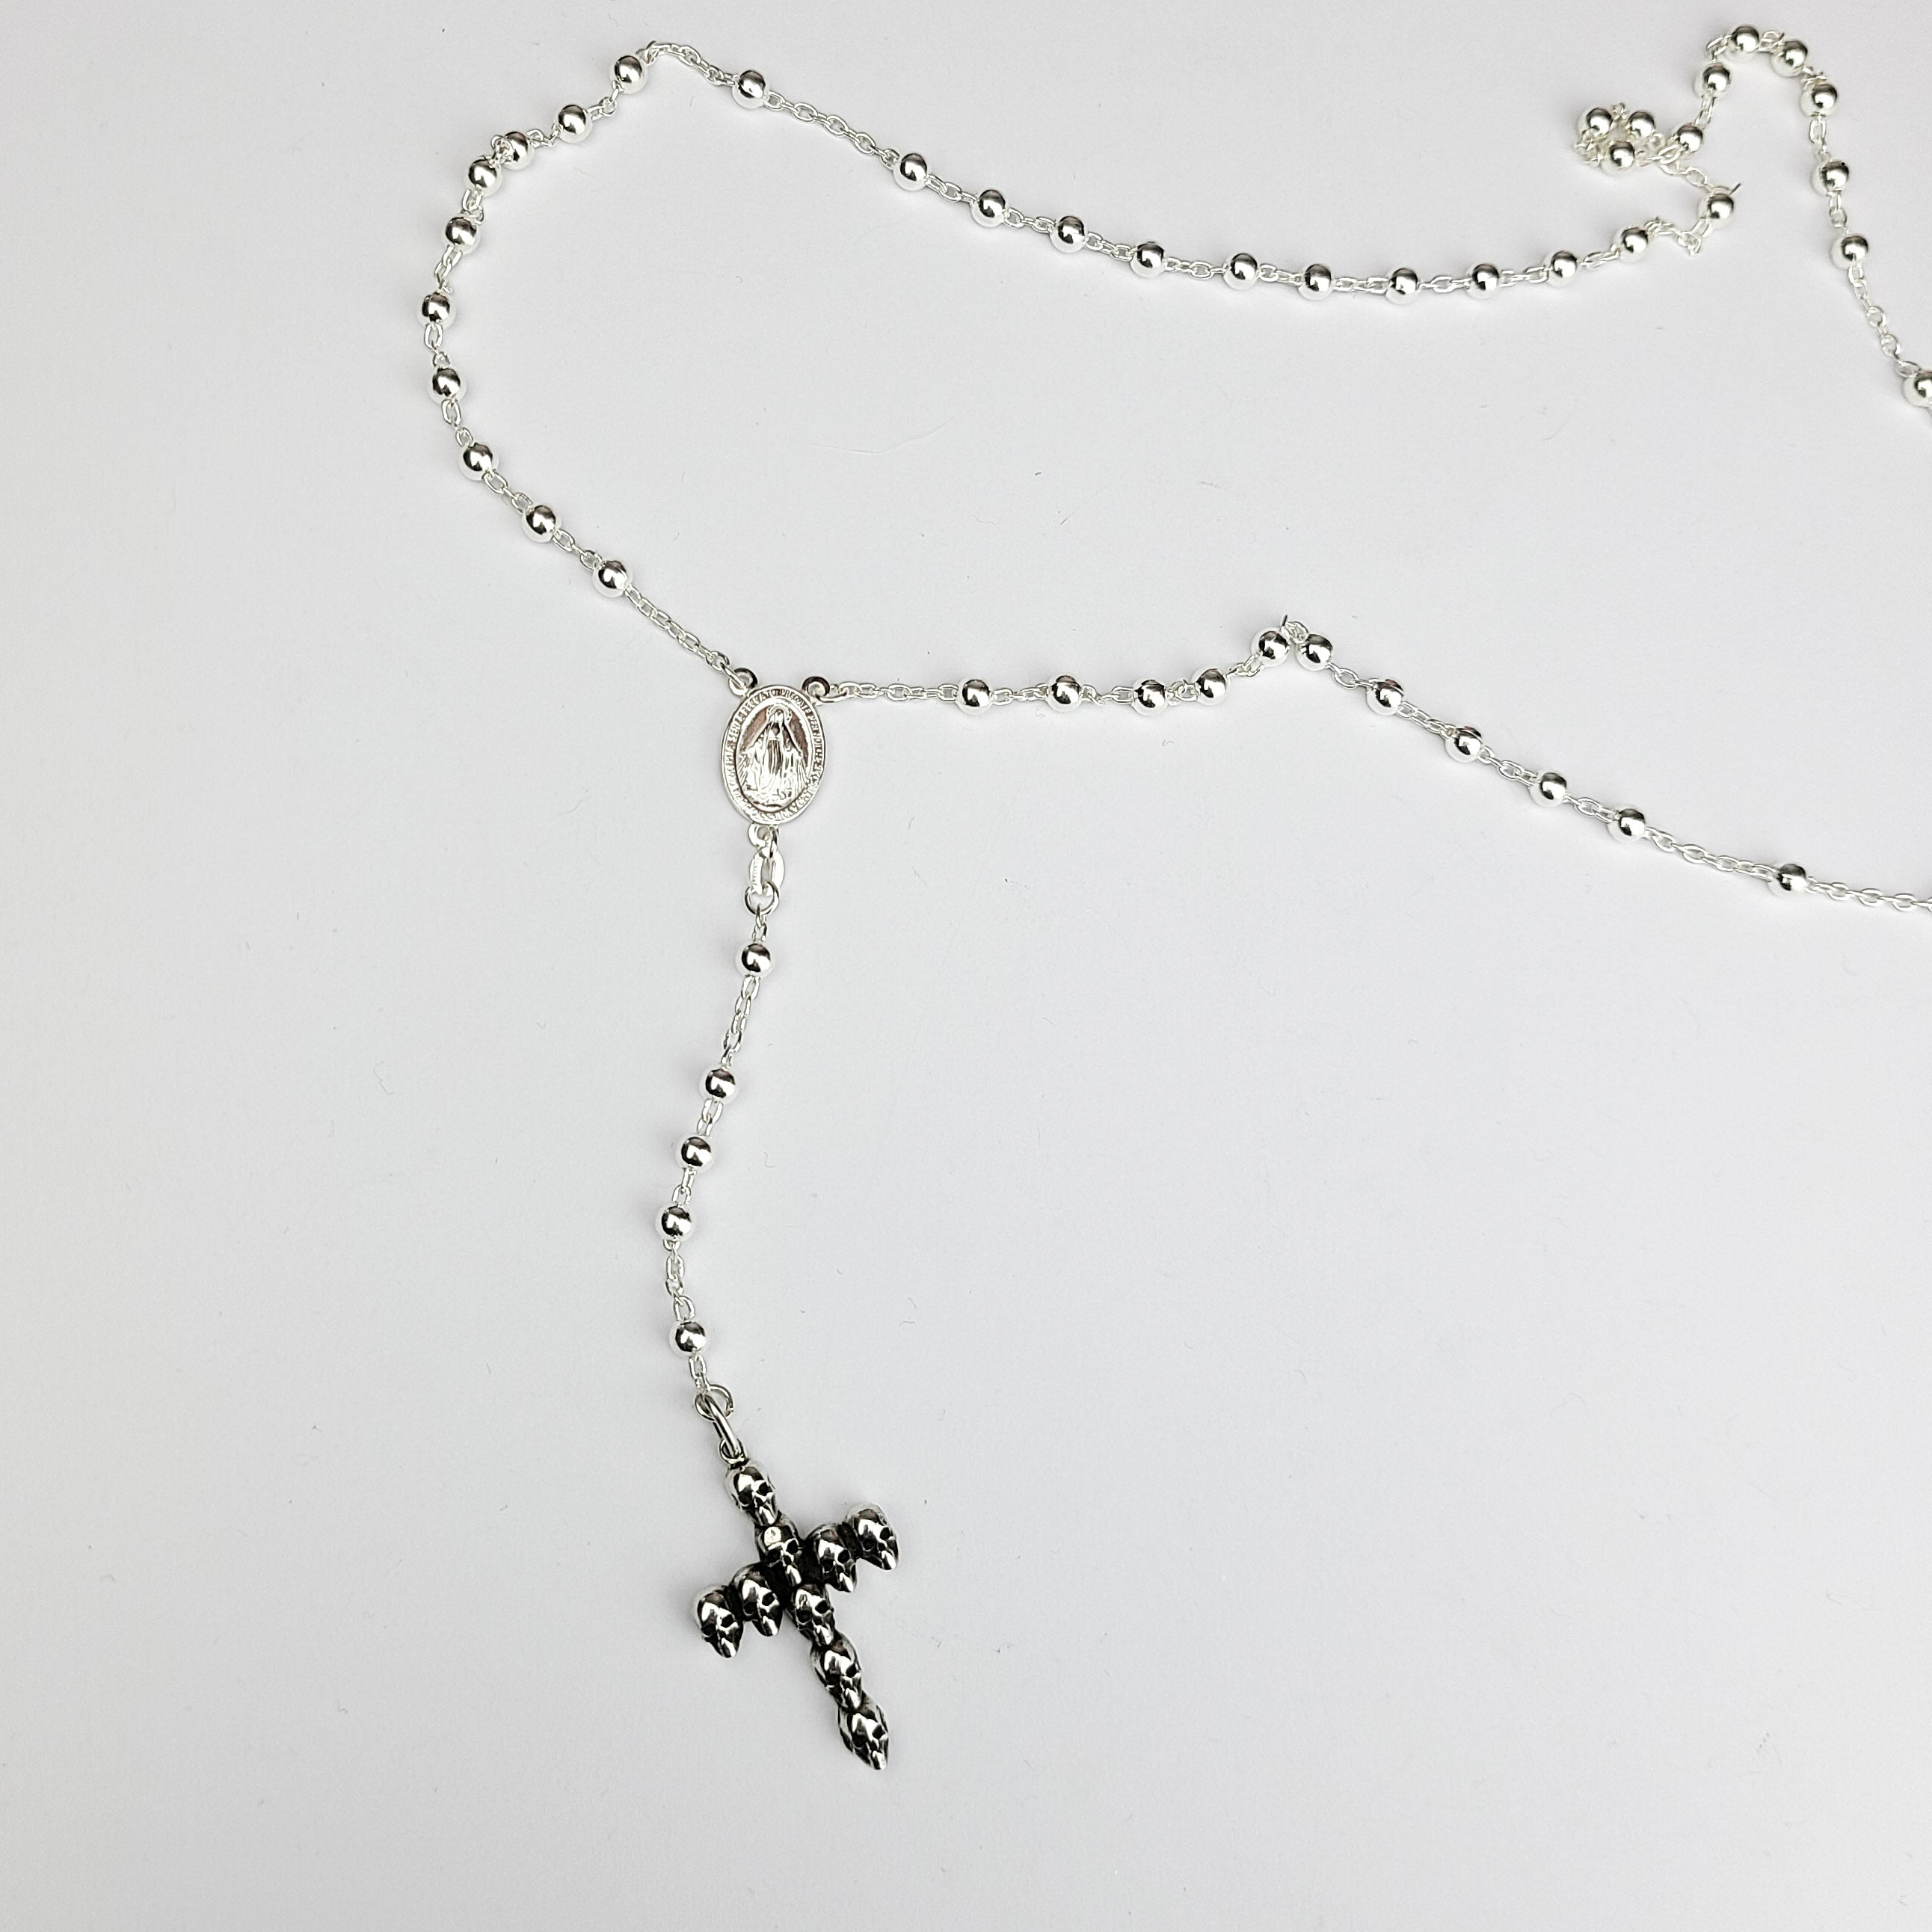 4mm Rosary Prayer Bead Necklace